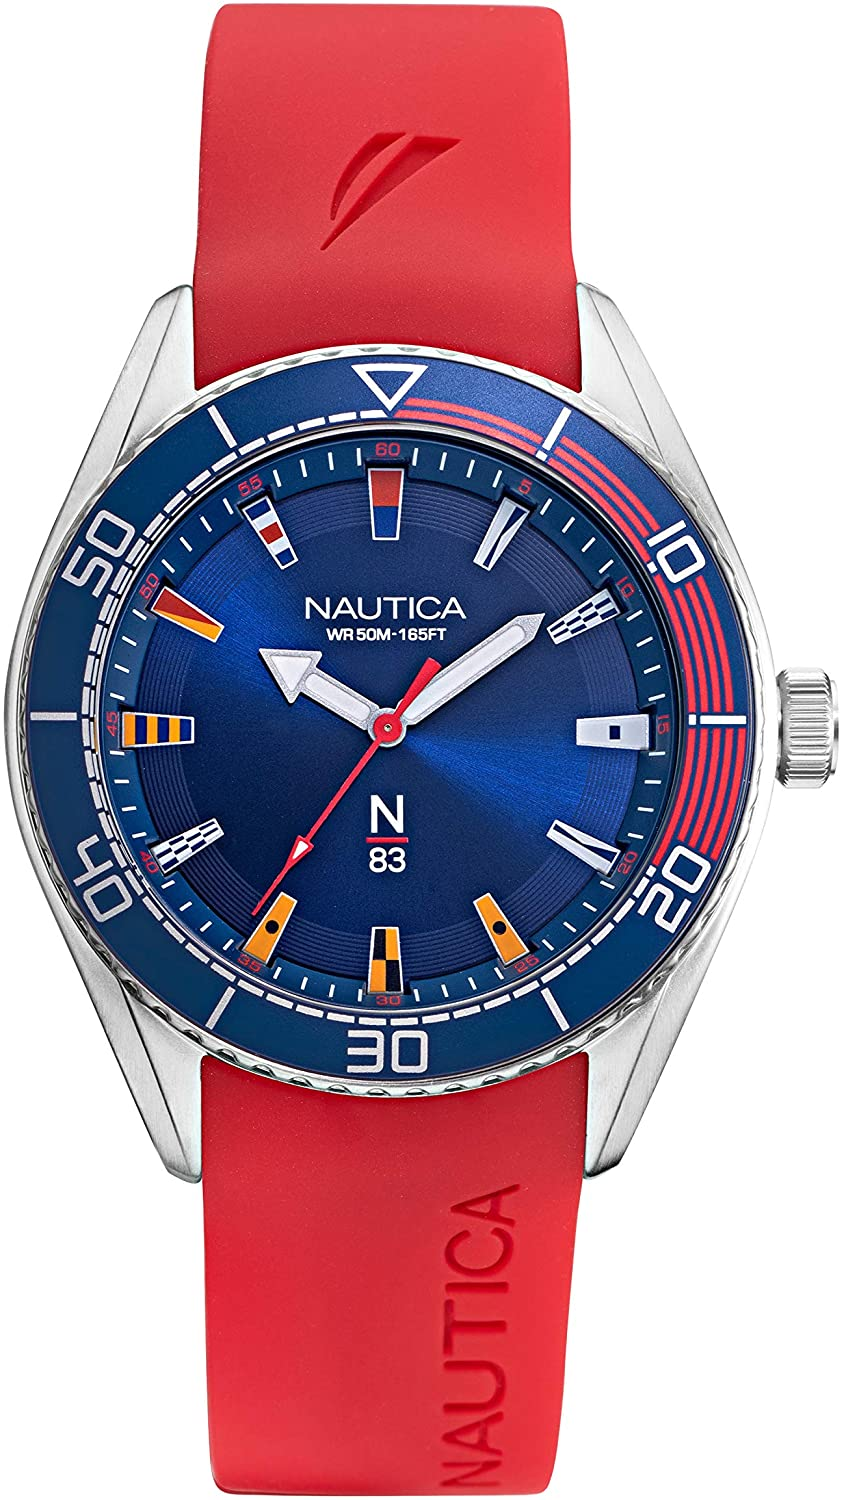 ノーティカ 腕時計 メンズ 【送料無料】Nautica Men's Finn World Brass Plated Stainless Steel Quartz Silicone Strap, Red, 22 Casual Watch (Model: NAPFWS011)ノーティカ 腕時計 メンズ